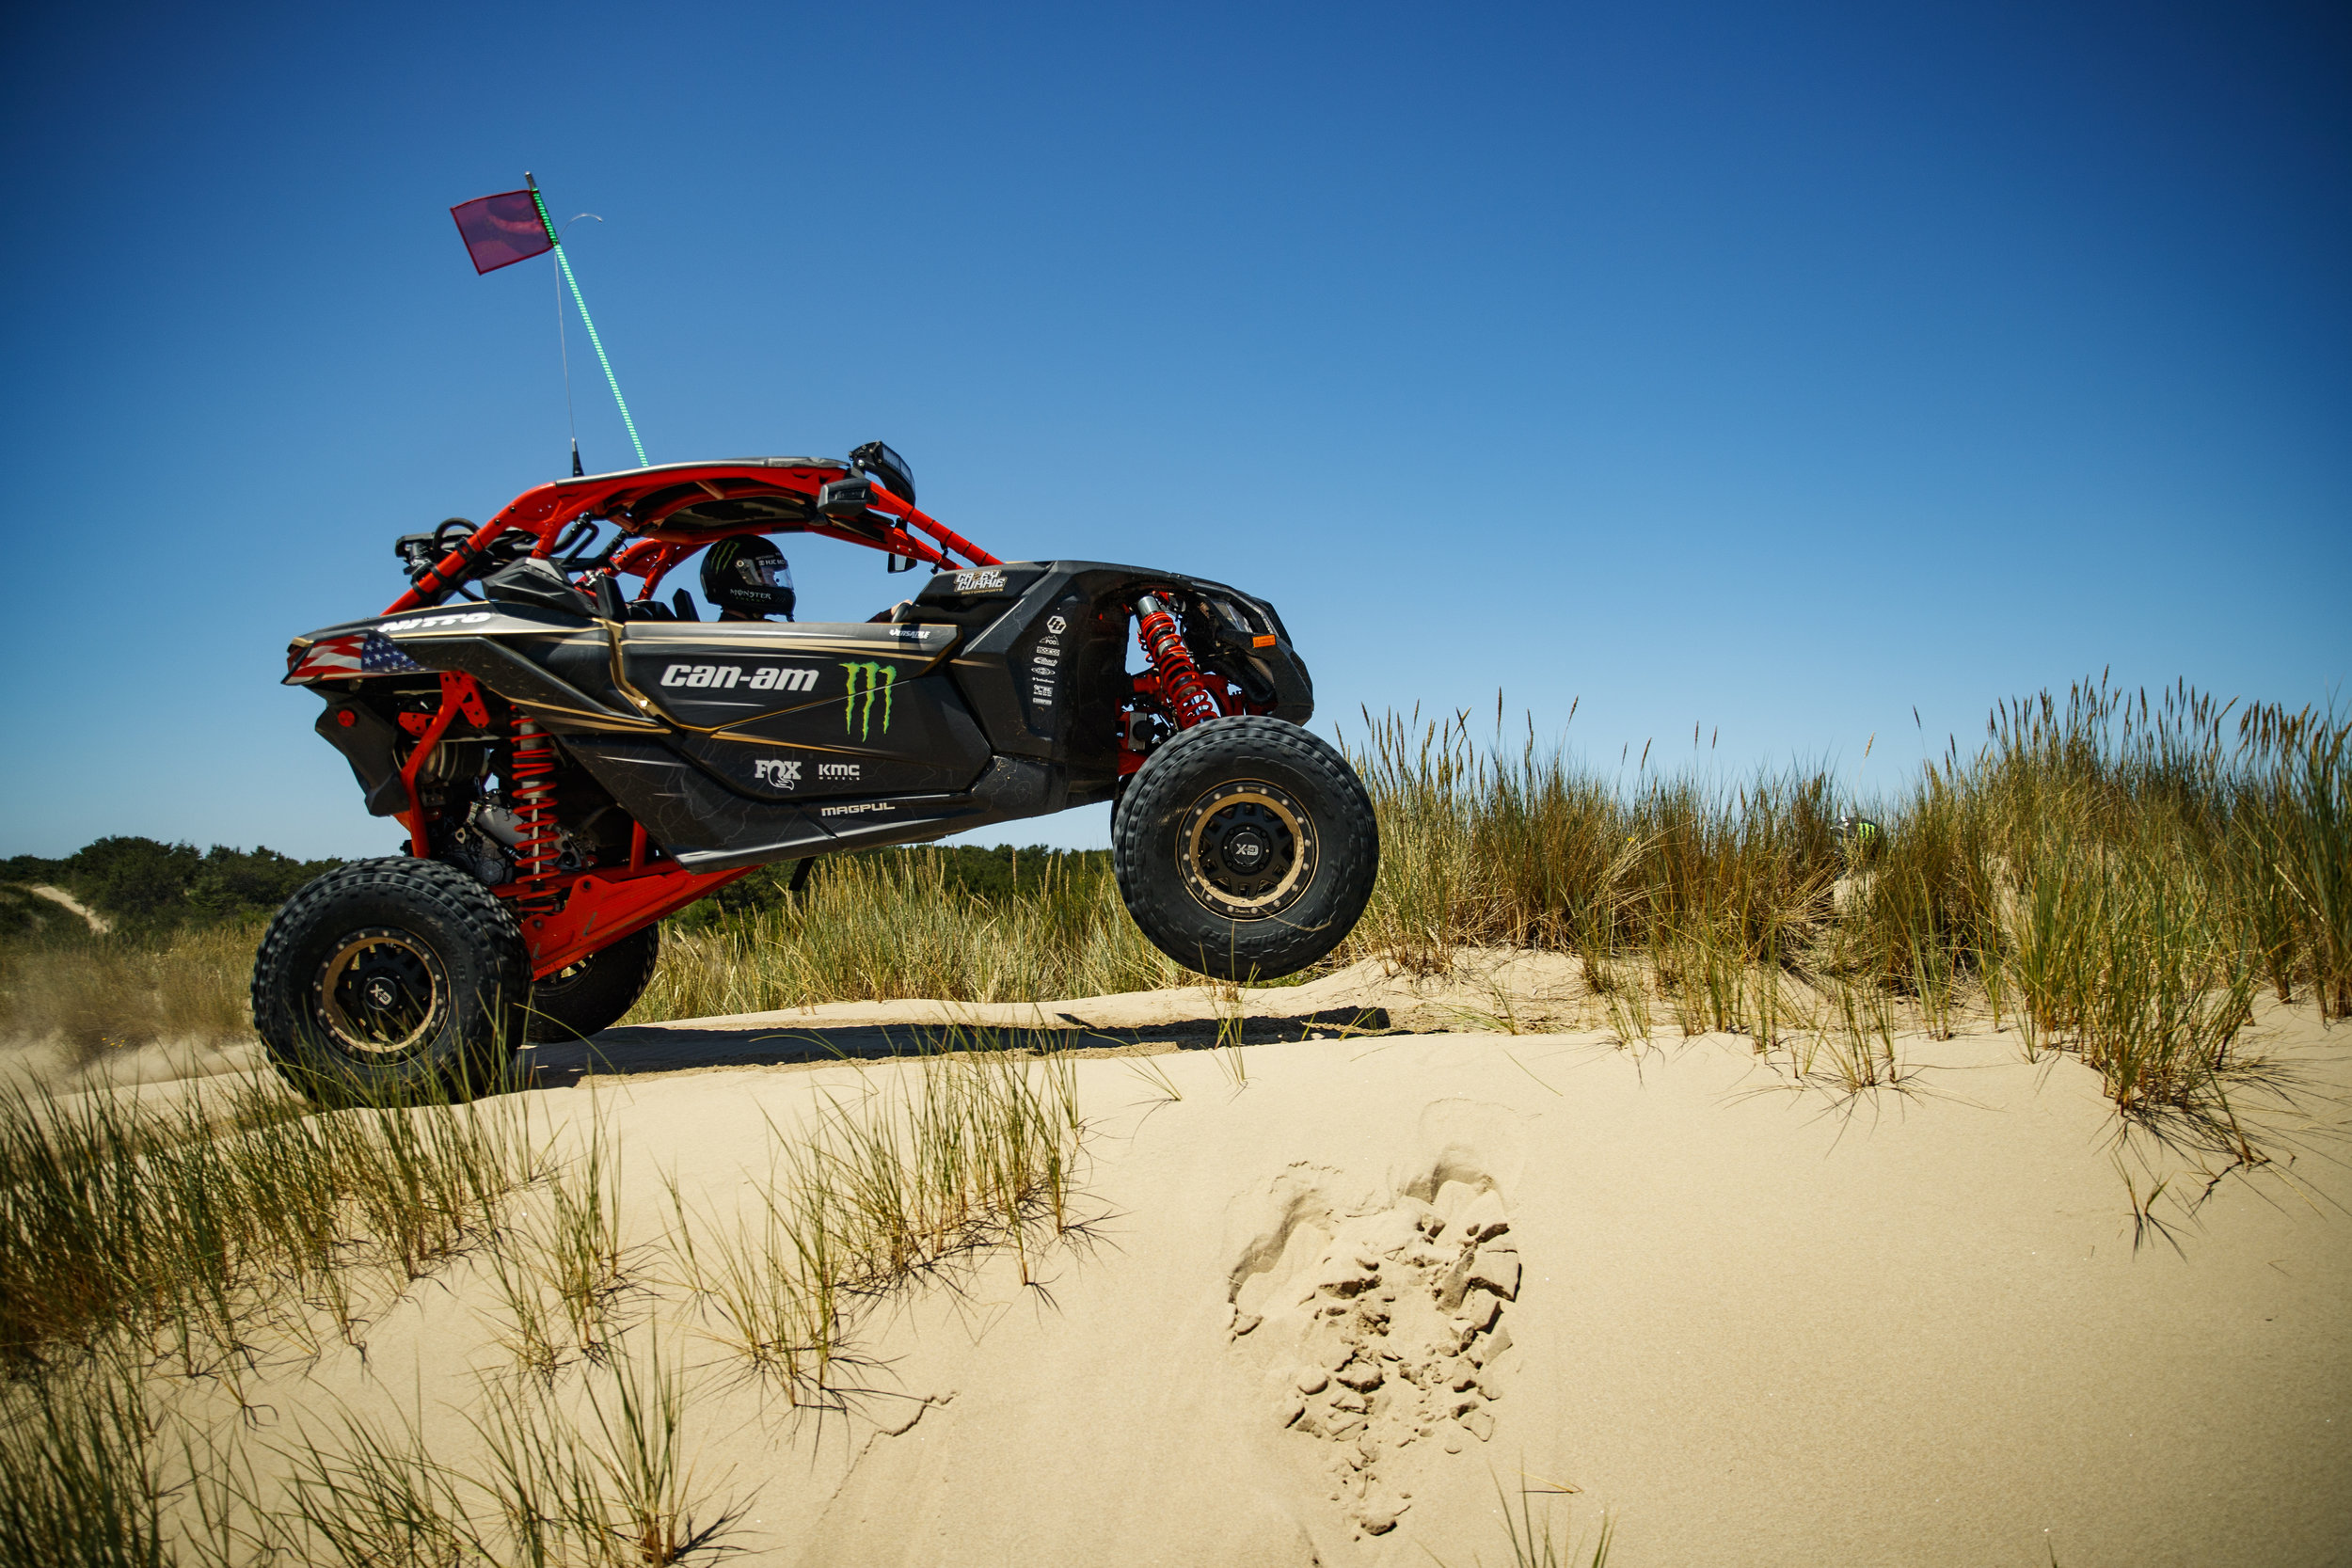 6_29_CaseyCurrie_UTVTakeover_CoosBay_Oregon_Can-Am_002.jpg